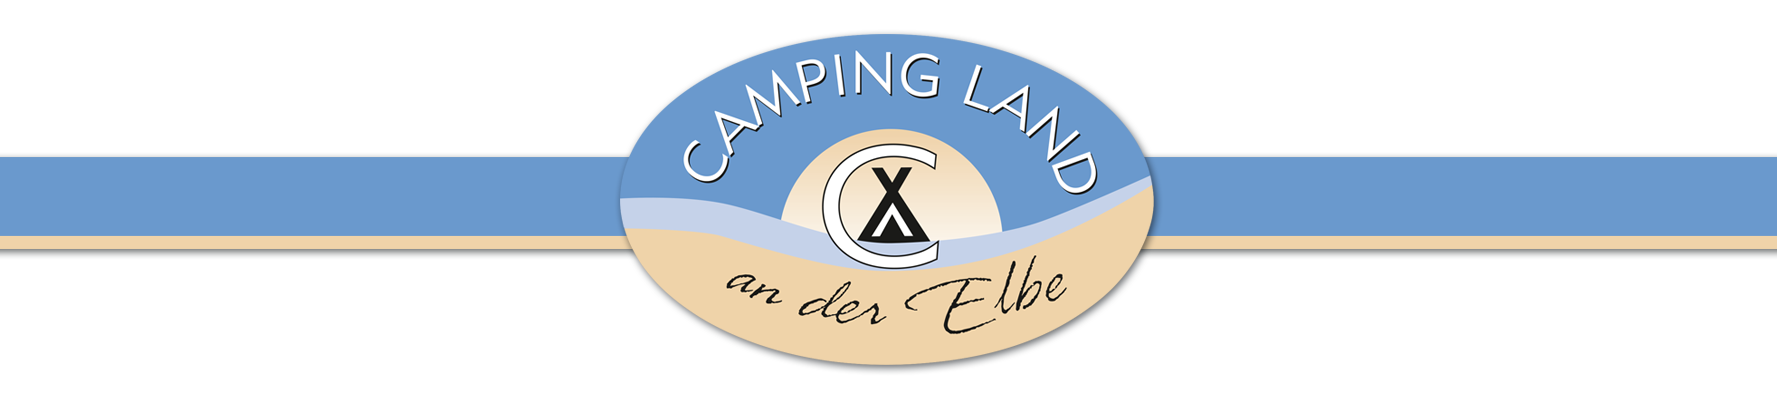 Logo Camping Land and der Elbe